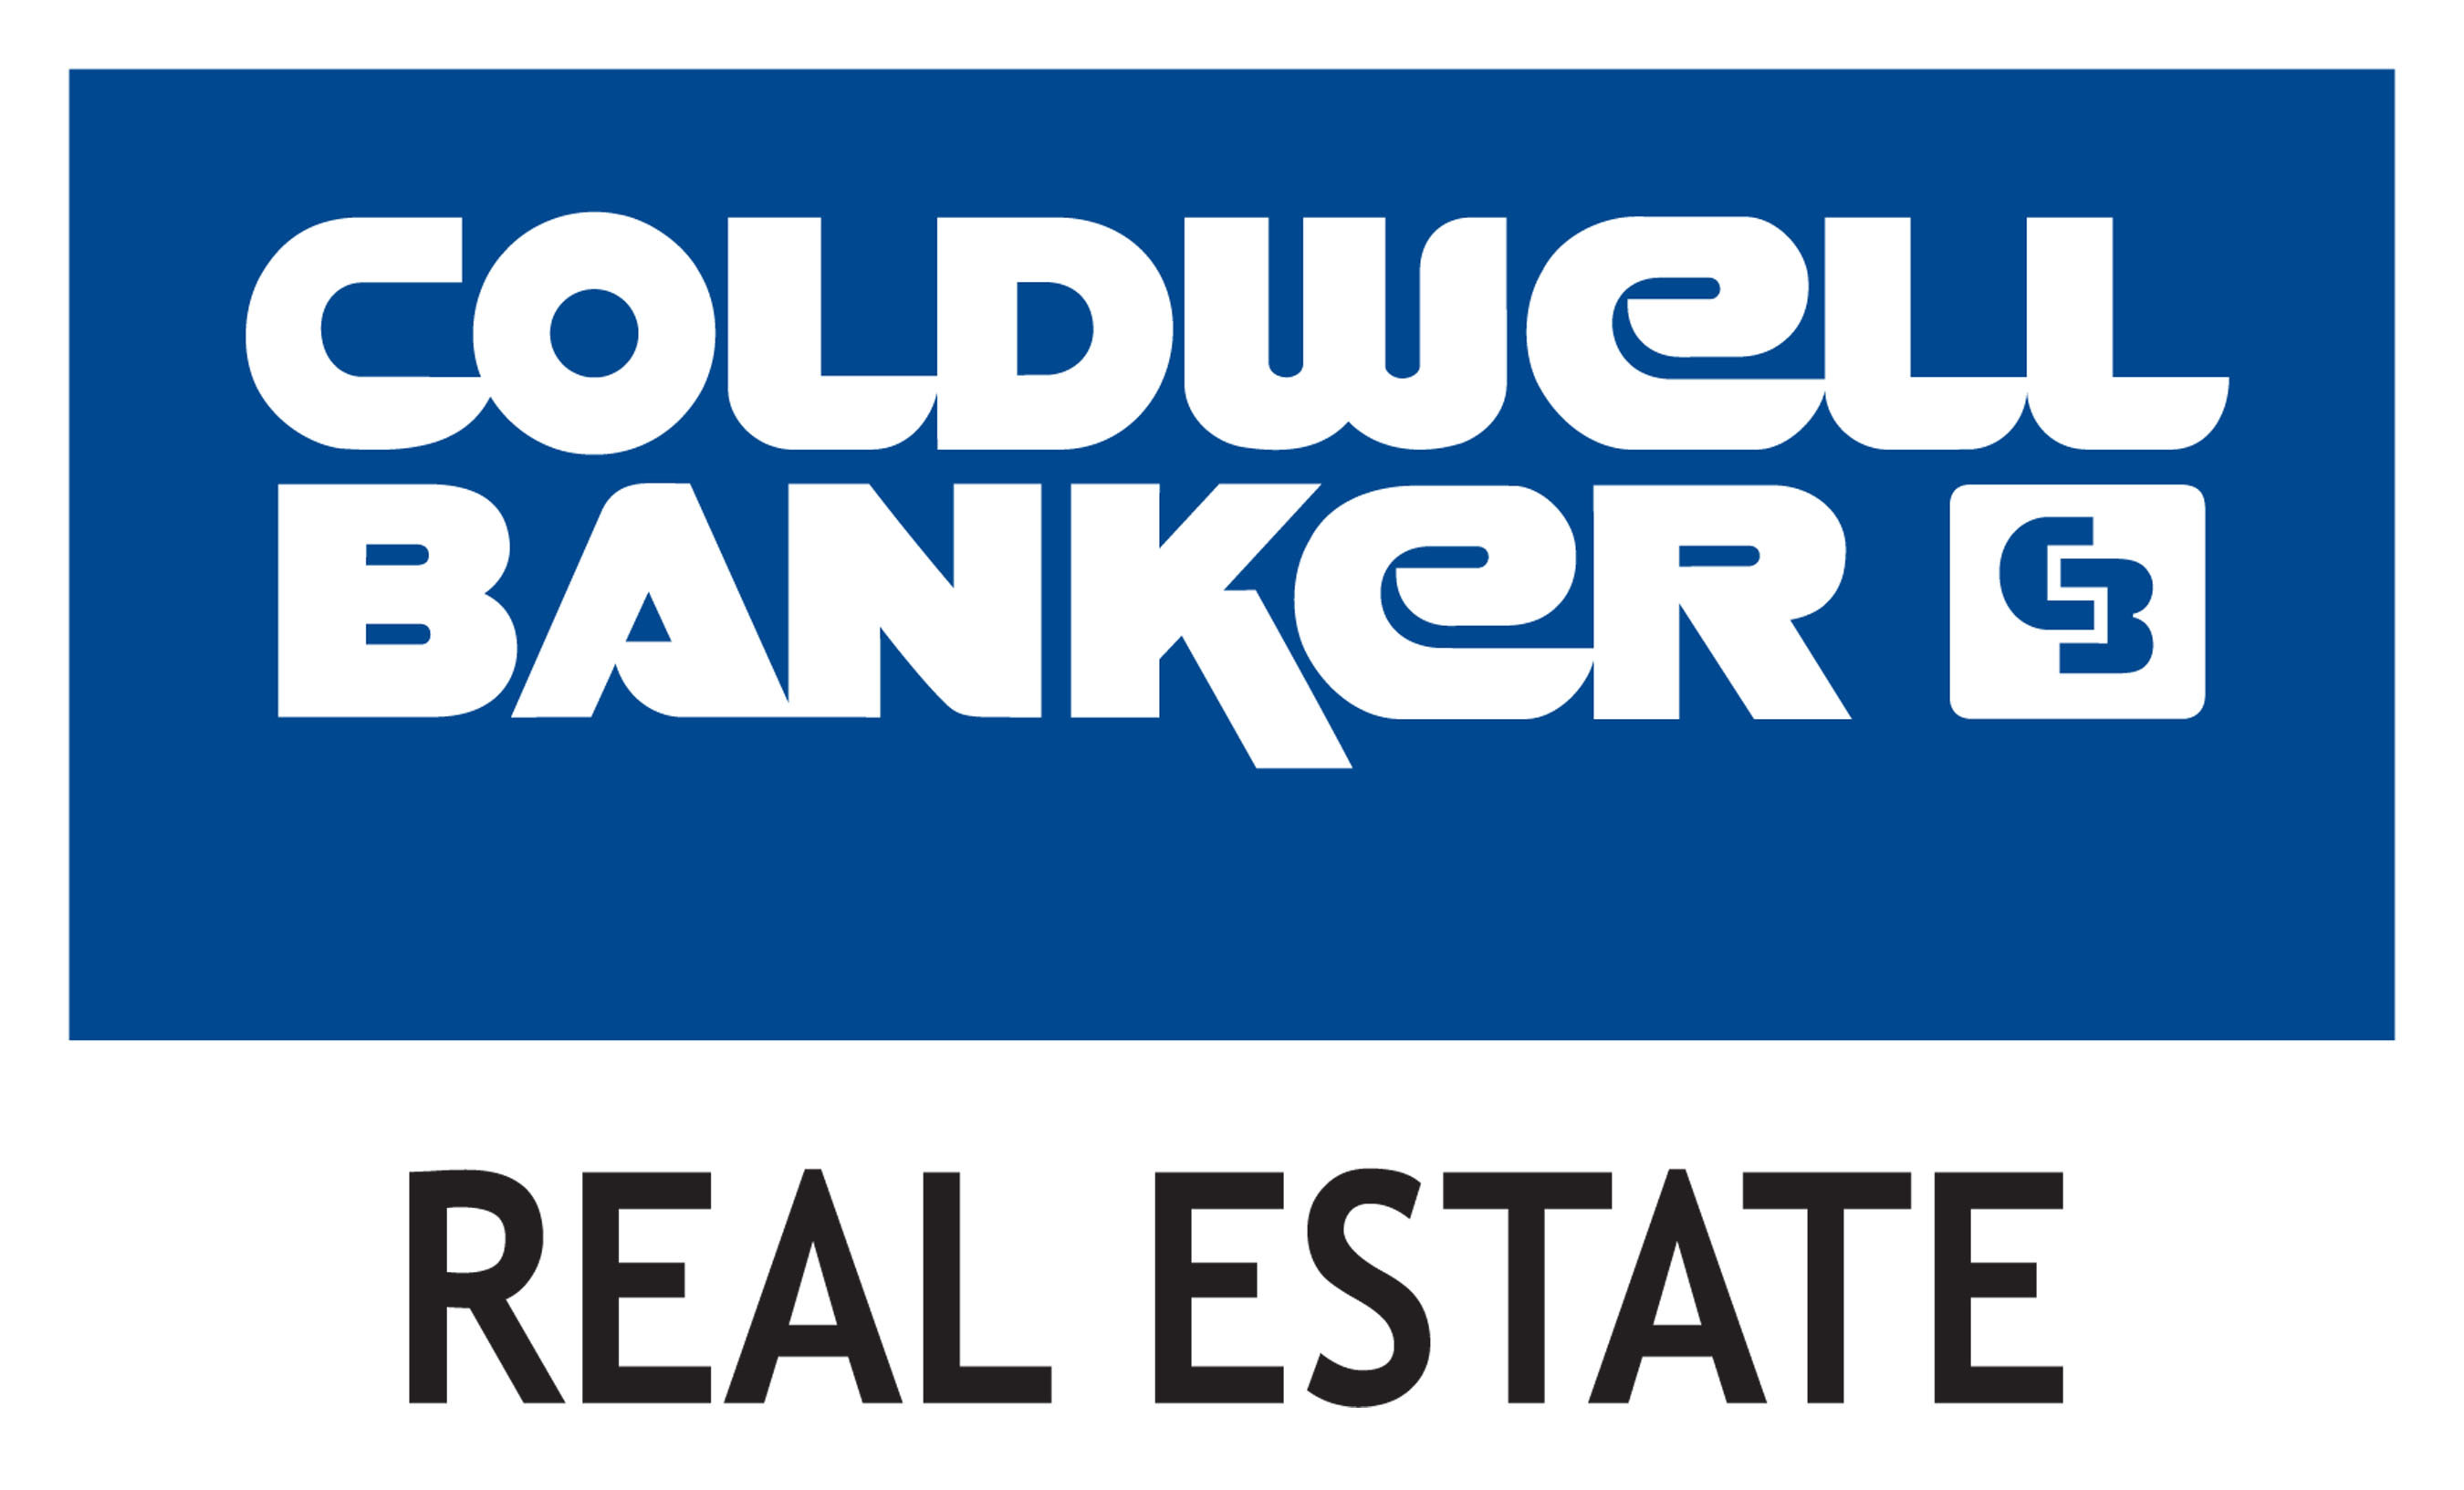 Coldwell Banker Defines Home as 'Awesome' in New National Advertising Campaign Featuring User-Generated Content